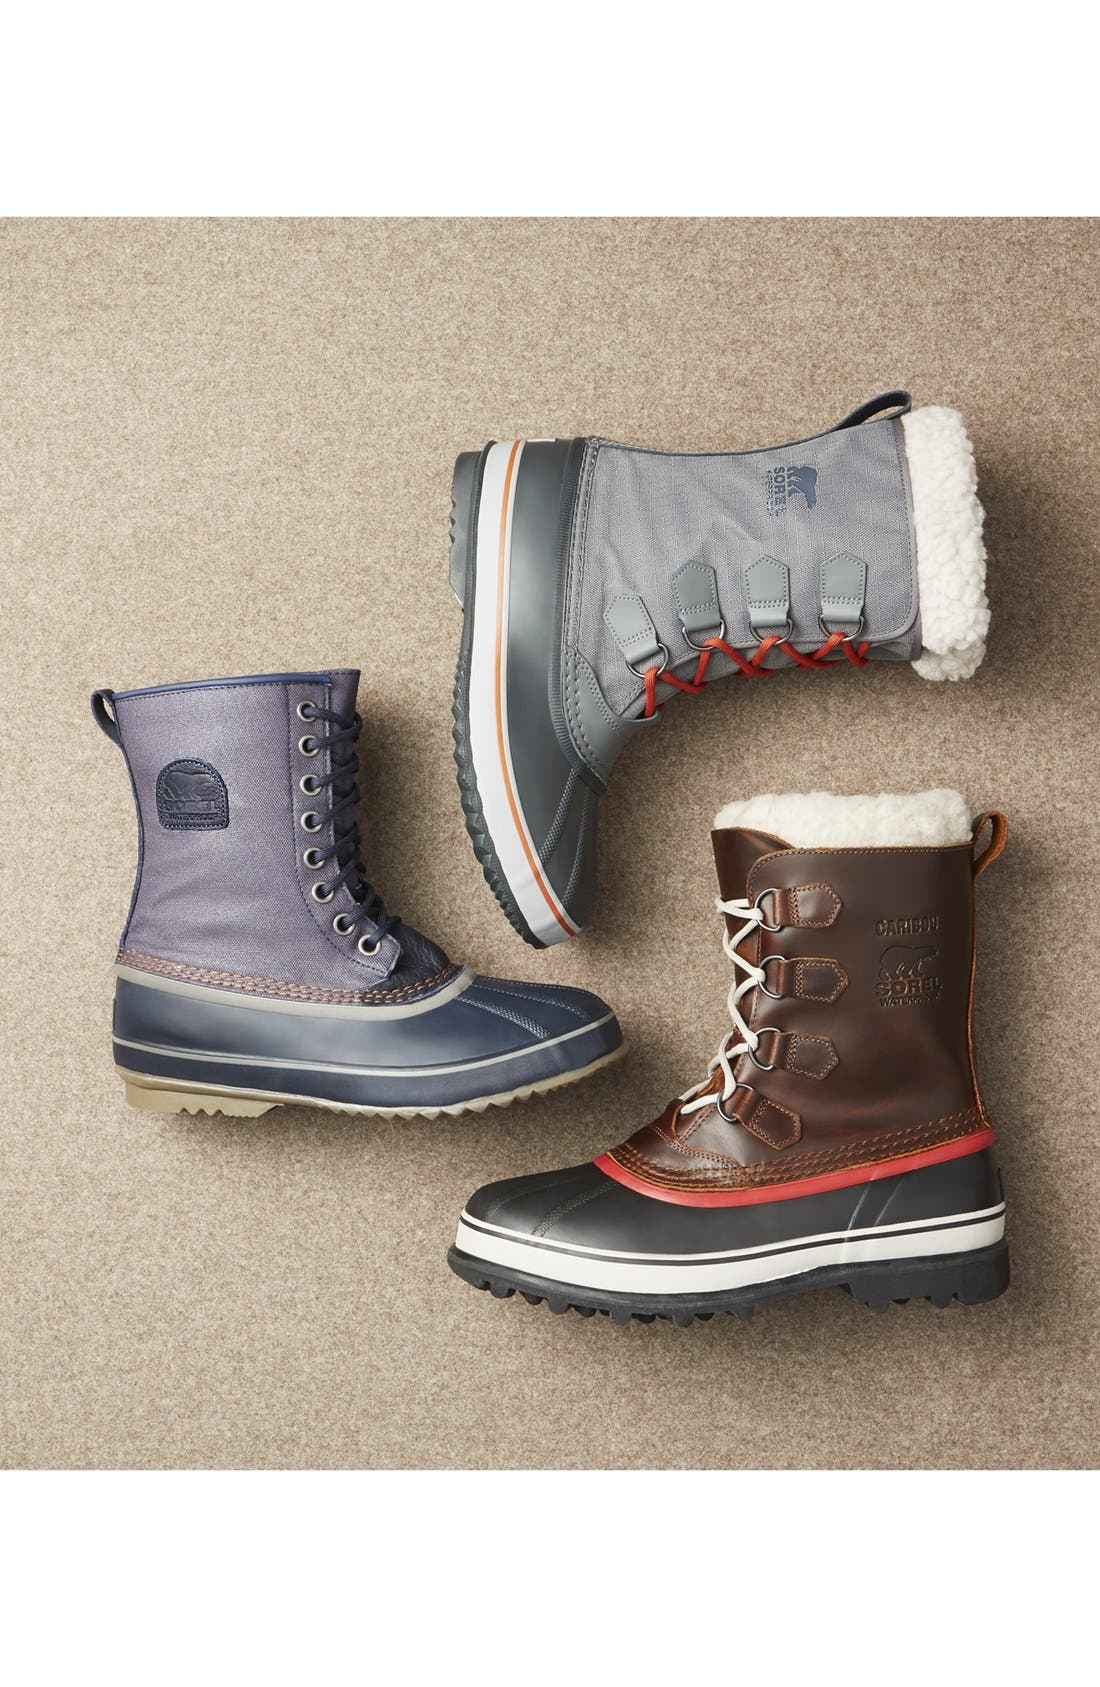 '1964 PAC' Snow Boot,                             Alternate thumbnail 5, color,                             DARK FOG/ SHARK GREY